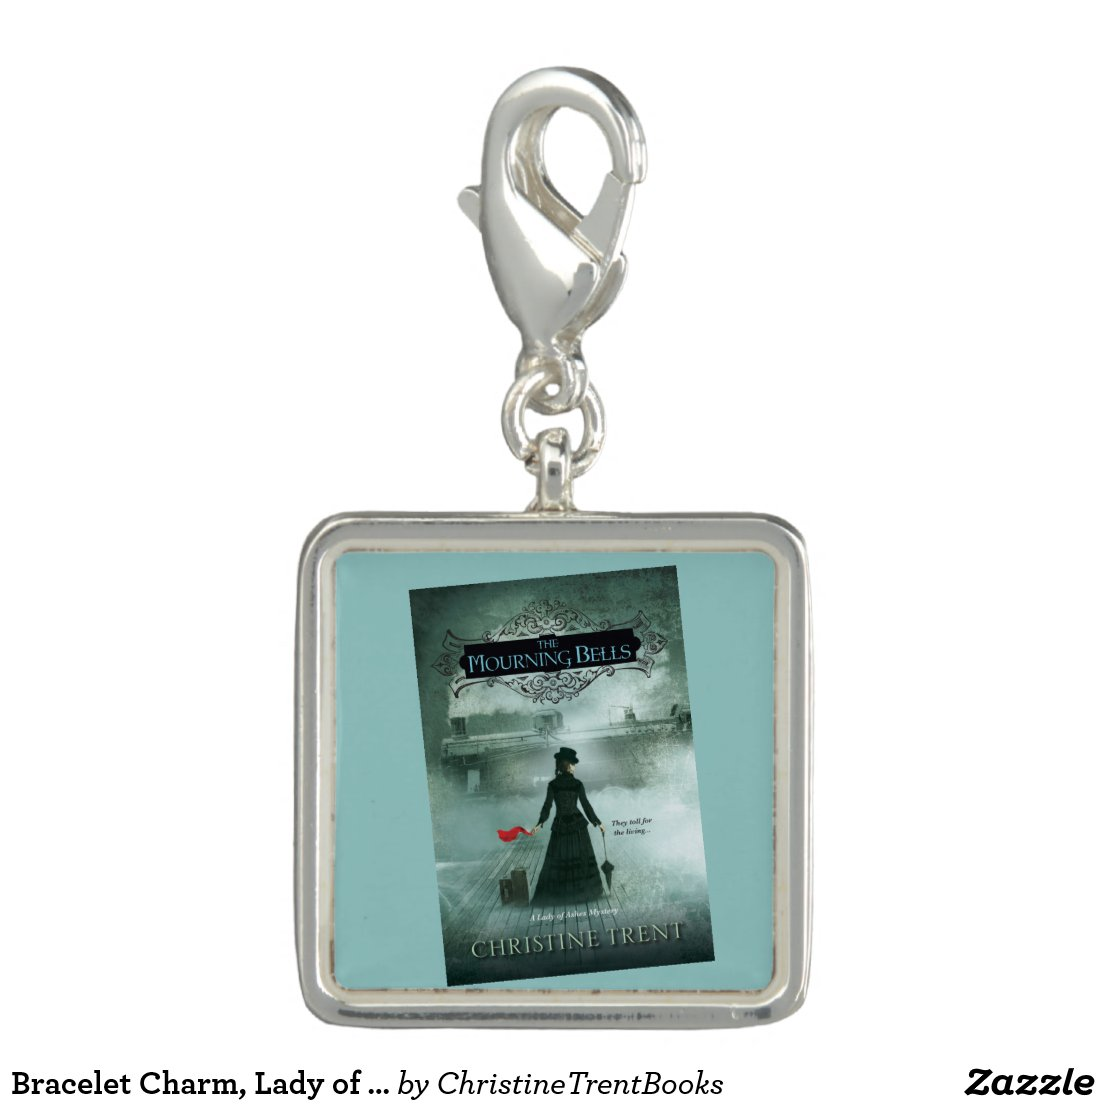 Bracelet Charm, Lady of Ashes, Mourning Bells